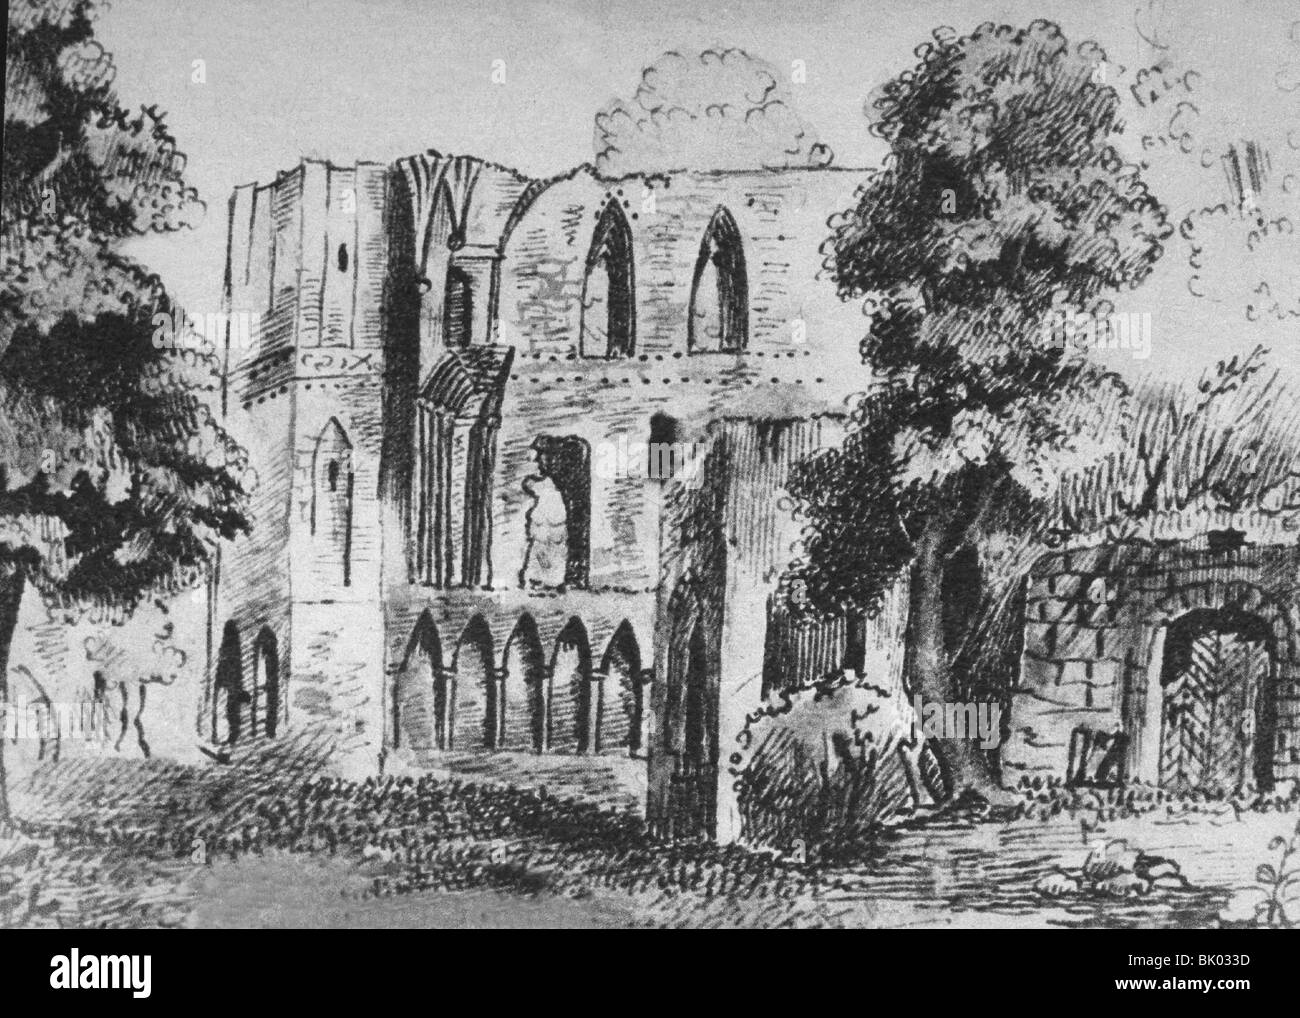 geography / travel, Germany, Lehnin monastery, founded 1180, Order of Cistercians, secularized 1542, ruin, watercolour - Stock Image